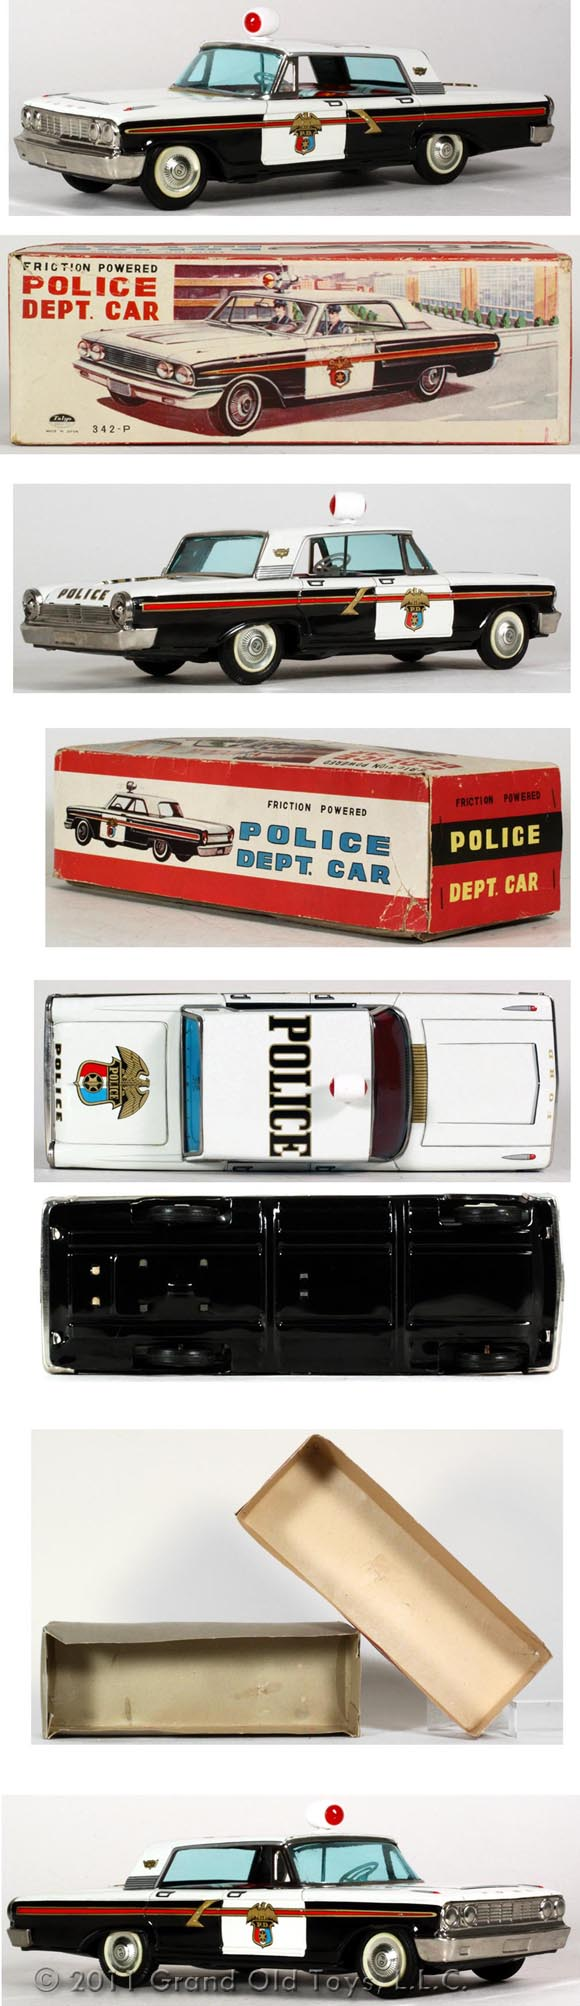 1963 Taiyo Ford Friction Police Dept Car In Original Box